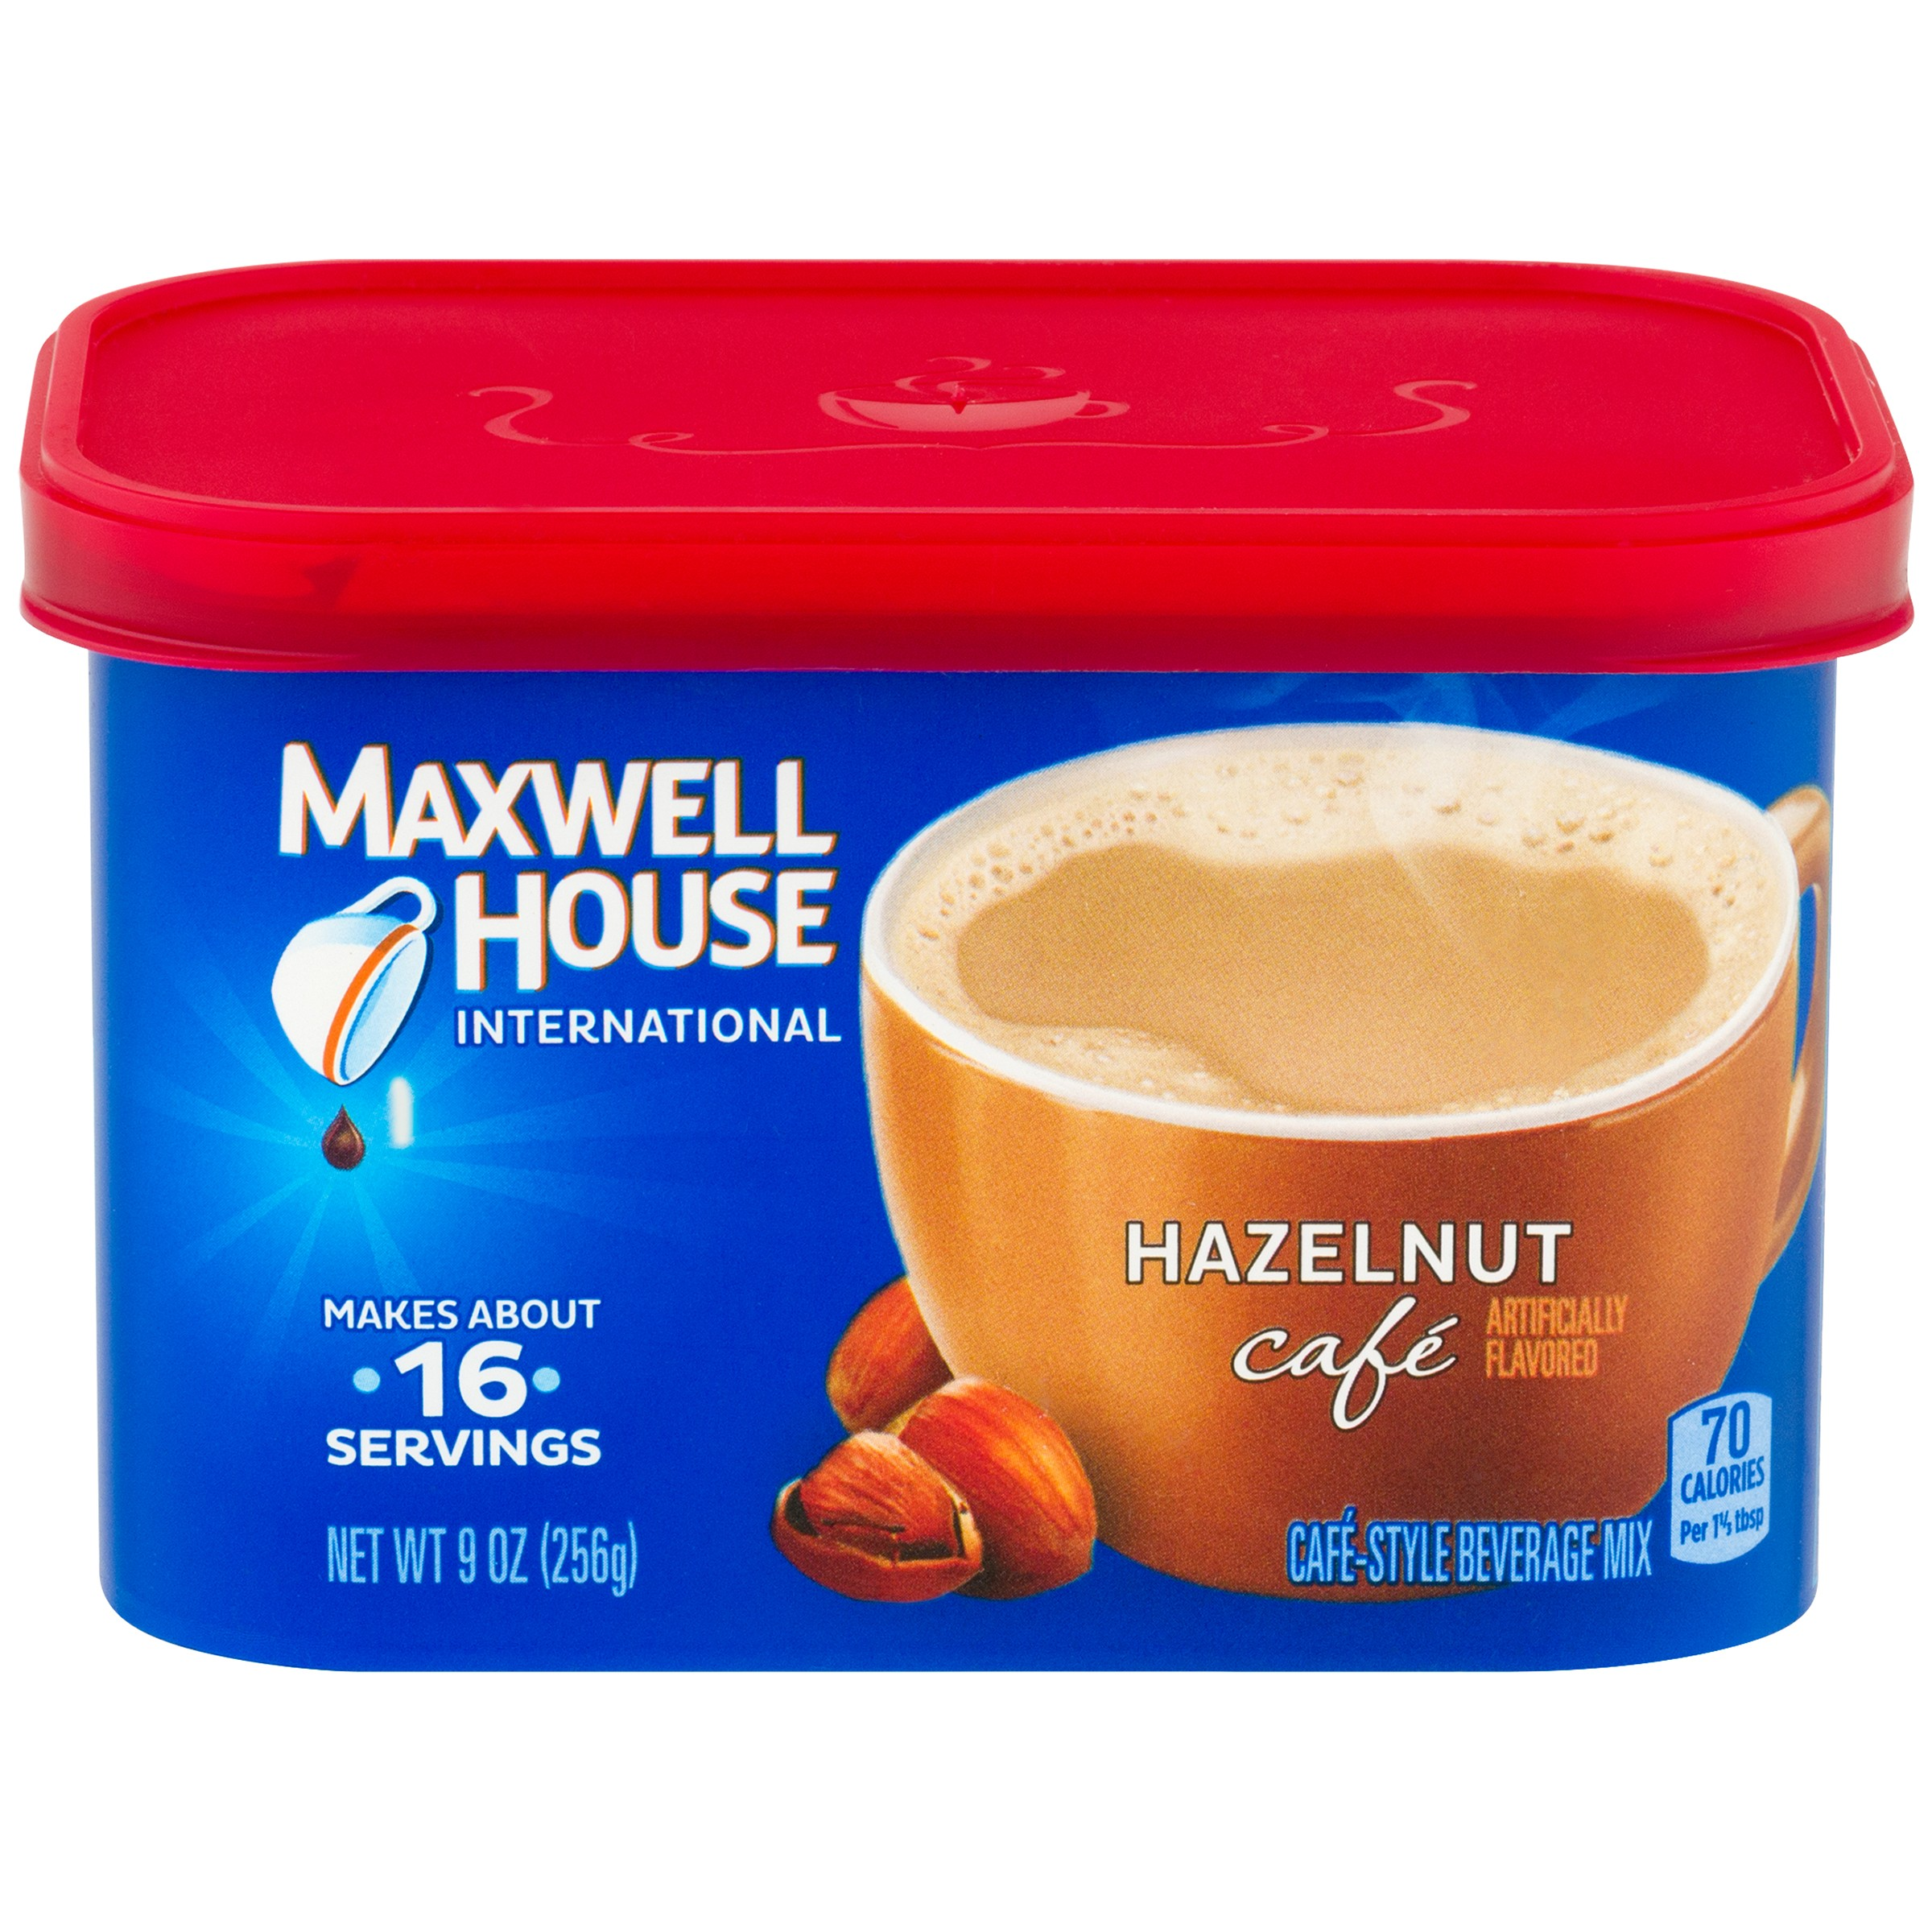 (4 Pack) Maxwell House International Hazelnut Coffee, 9 oz Canister